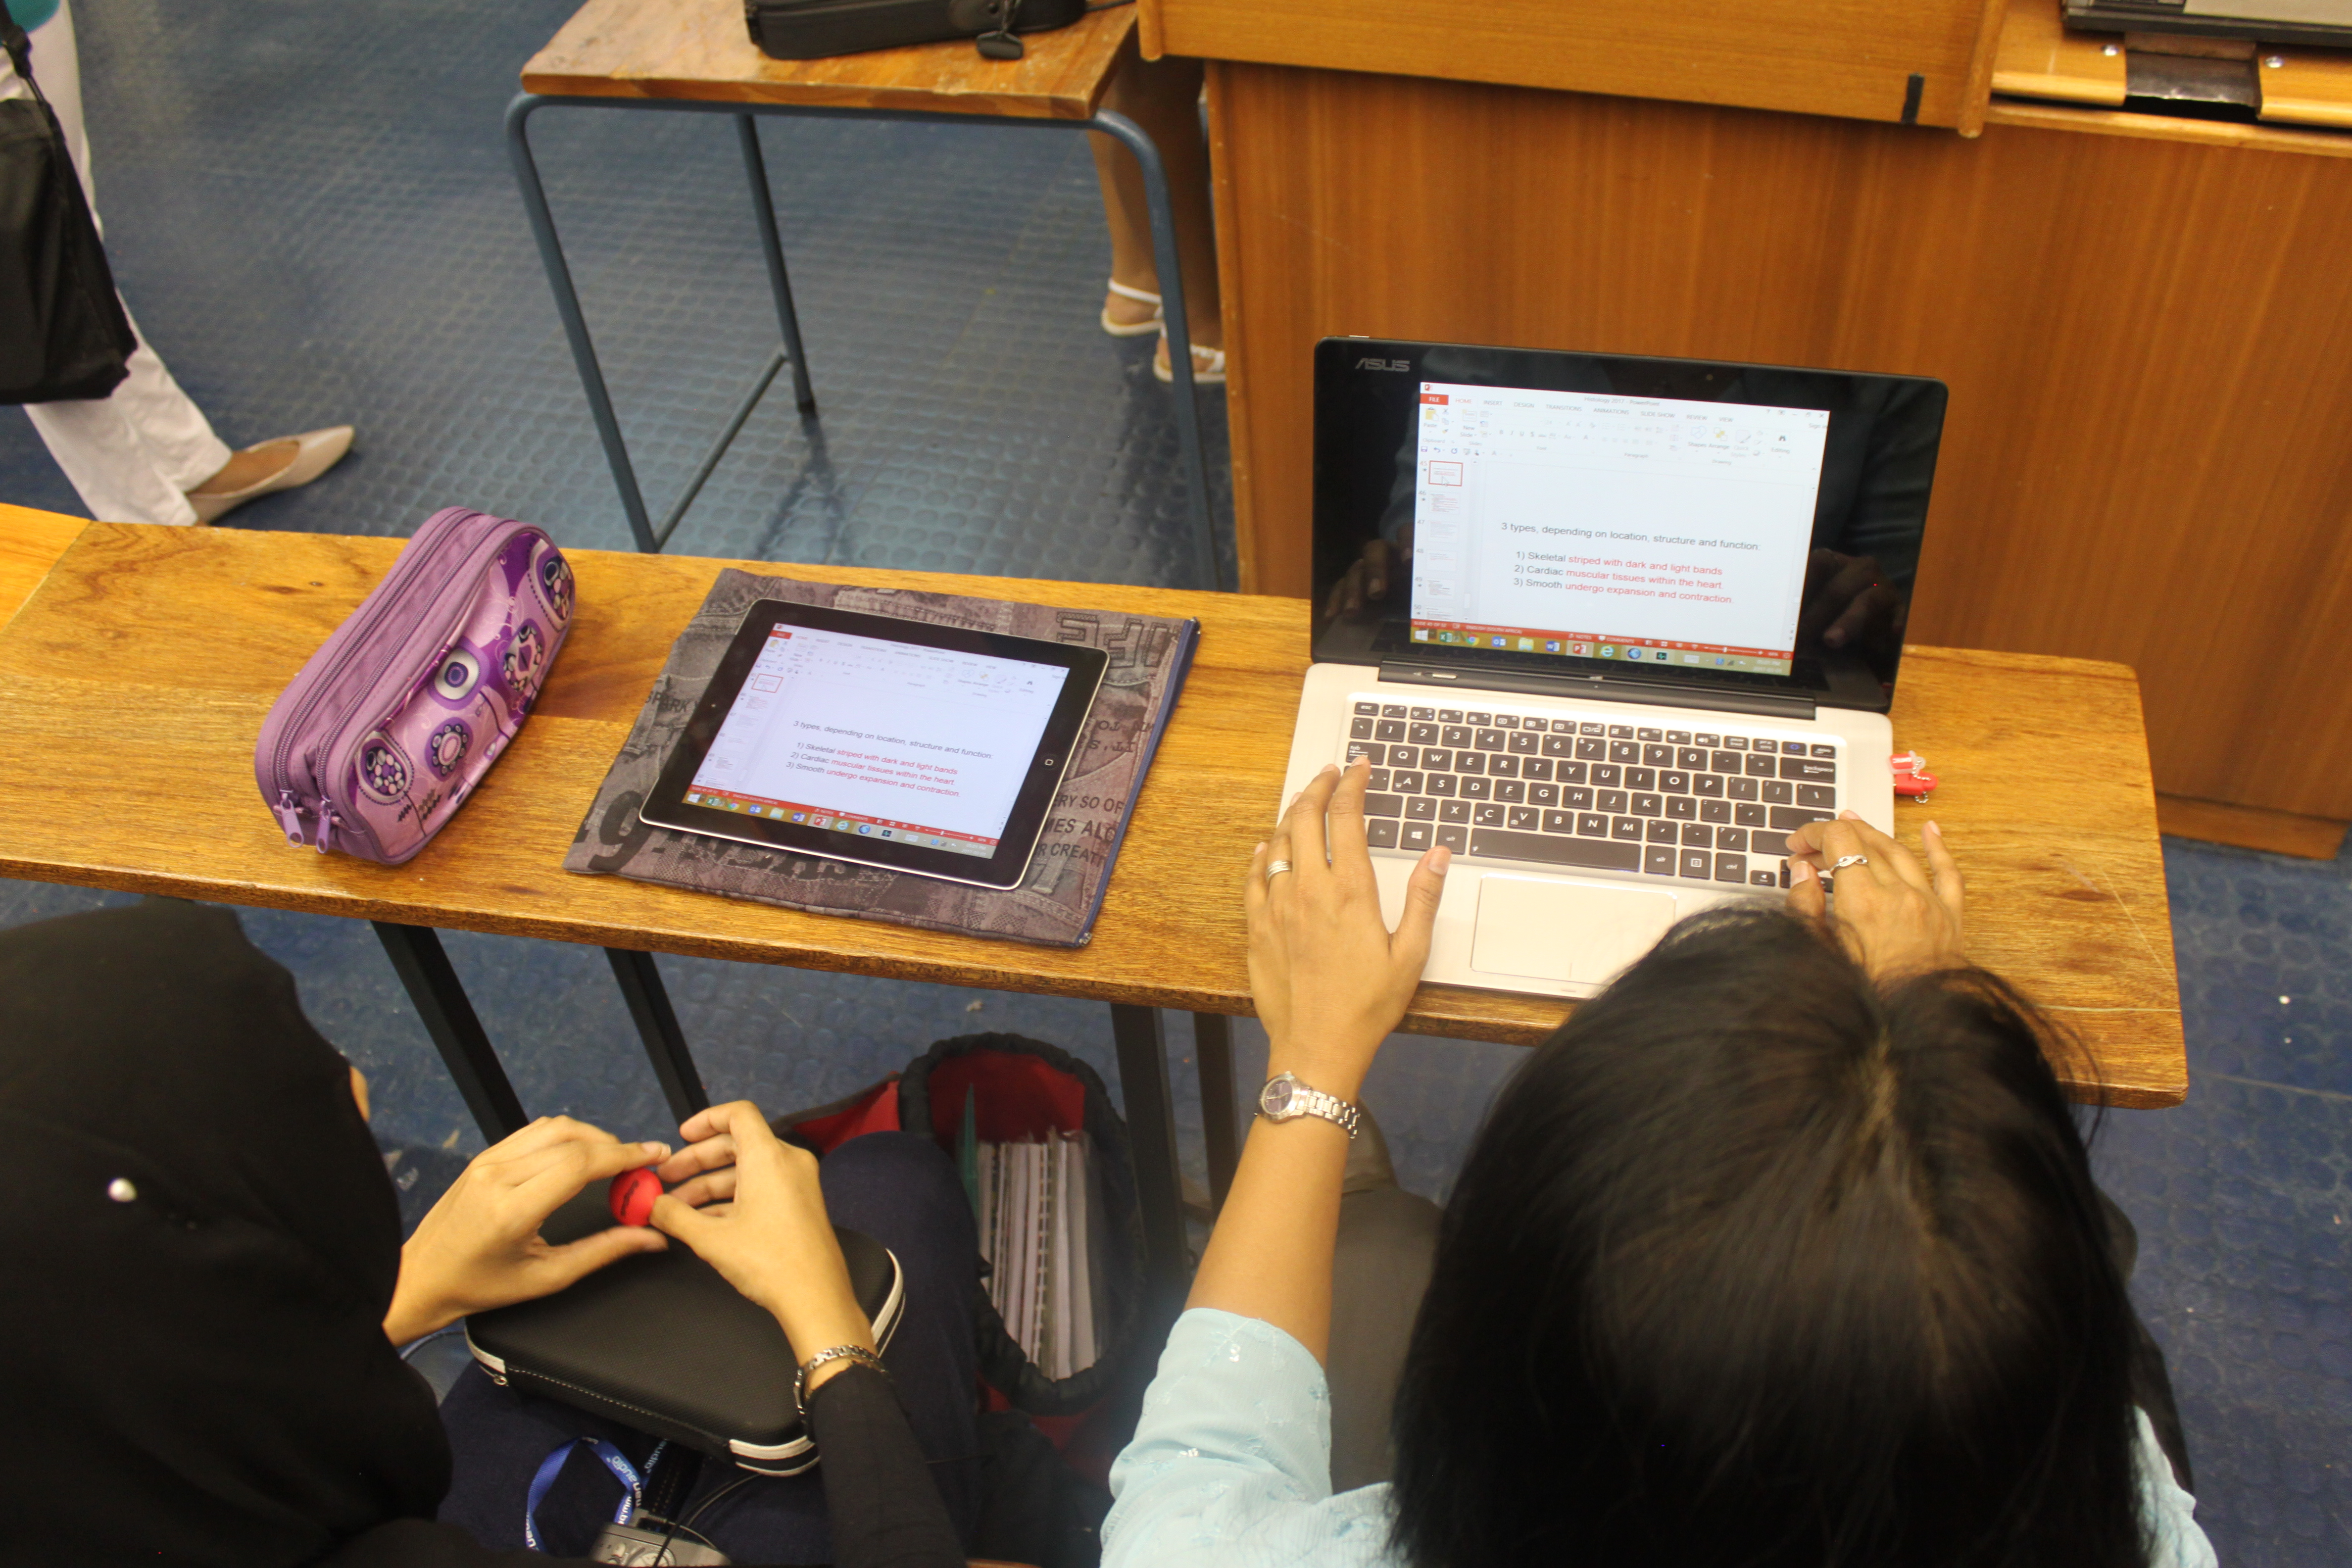 Tech reduces costs of learning accessibility